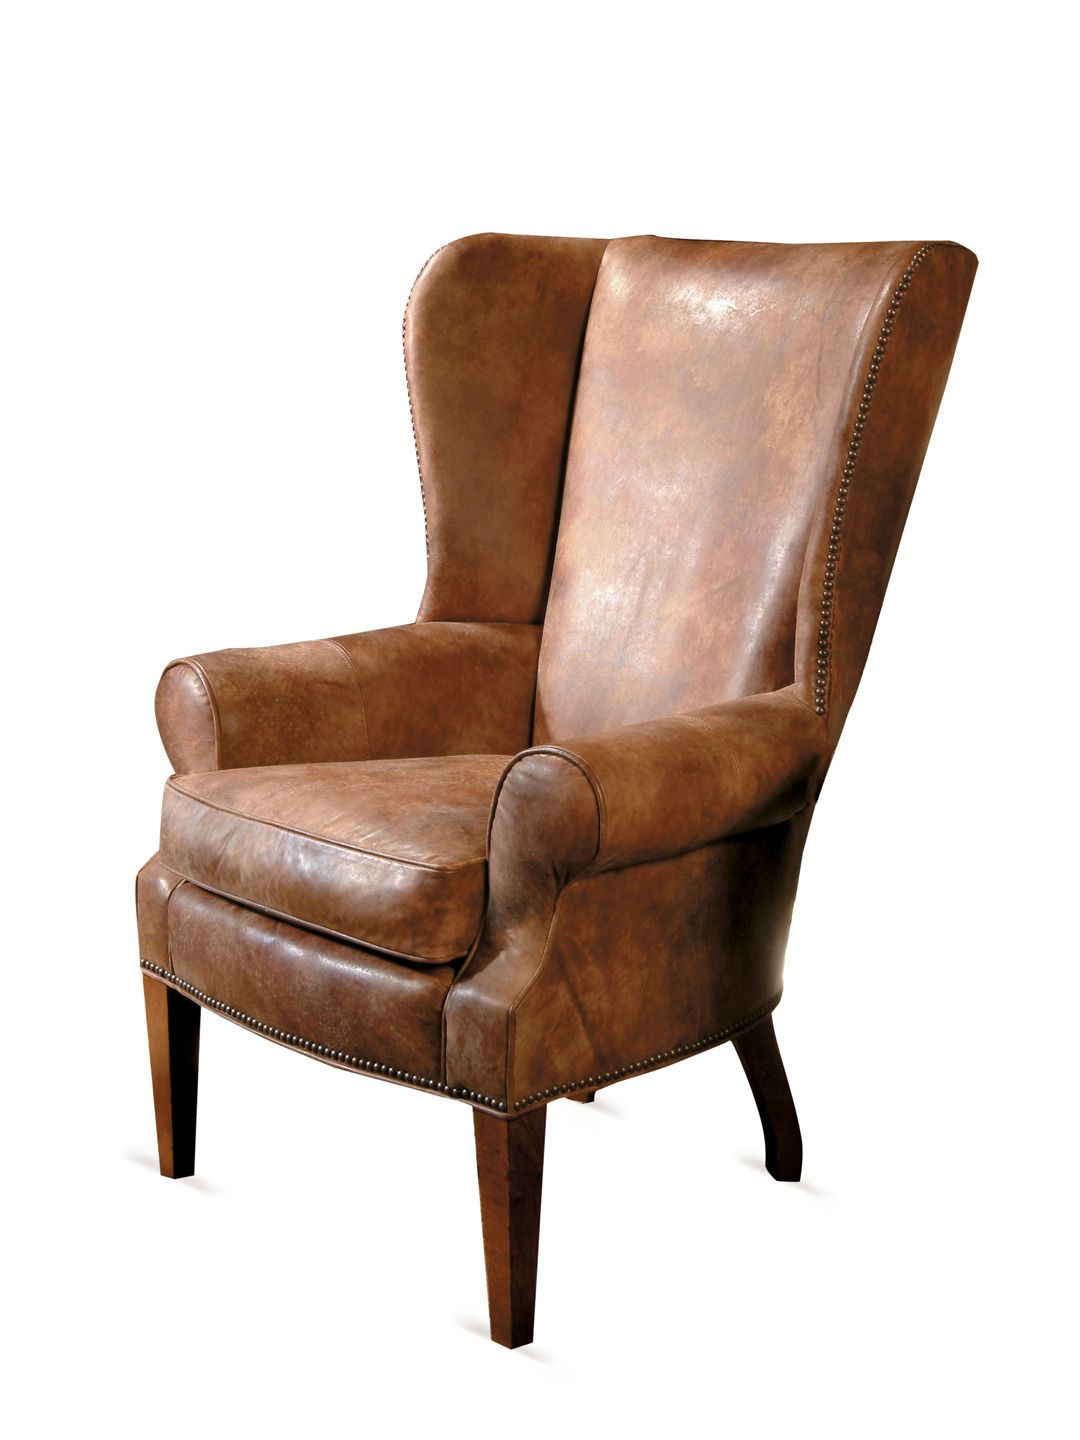 Traditional Leather Wingback Chair Herman Miller Embody Used Harden Furniture Wing Interiors Architecture